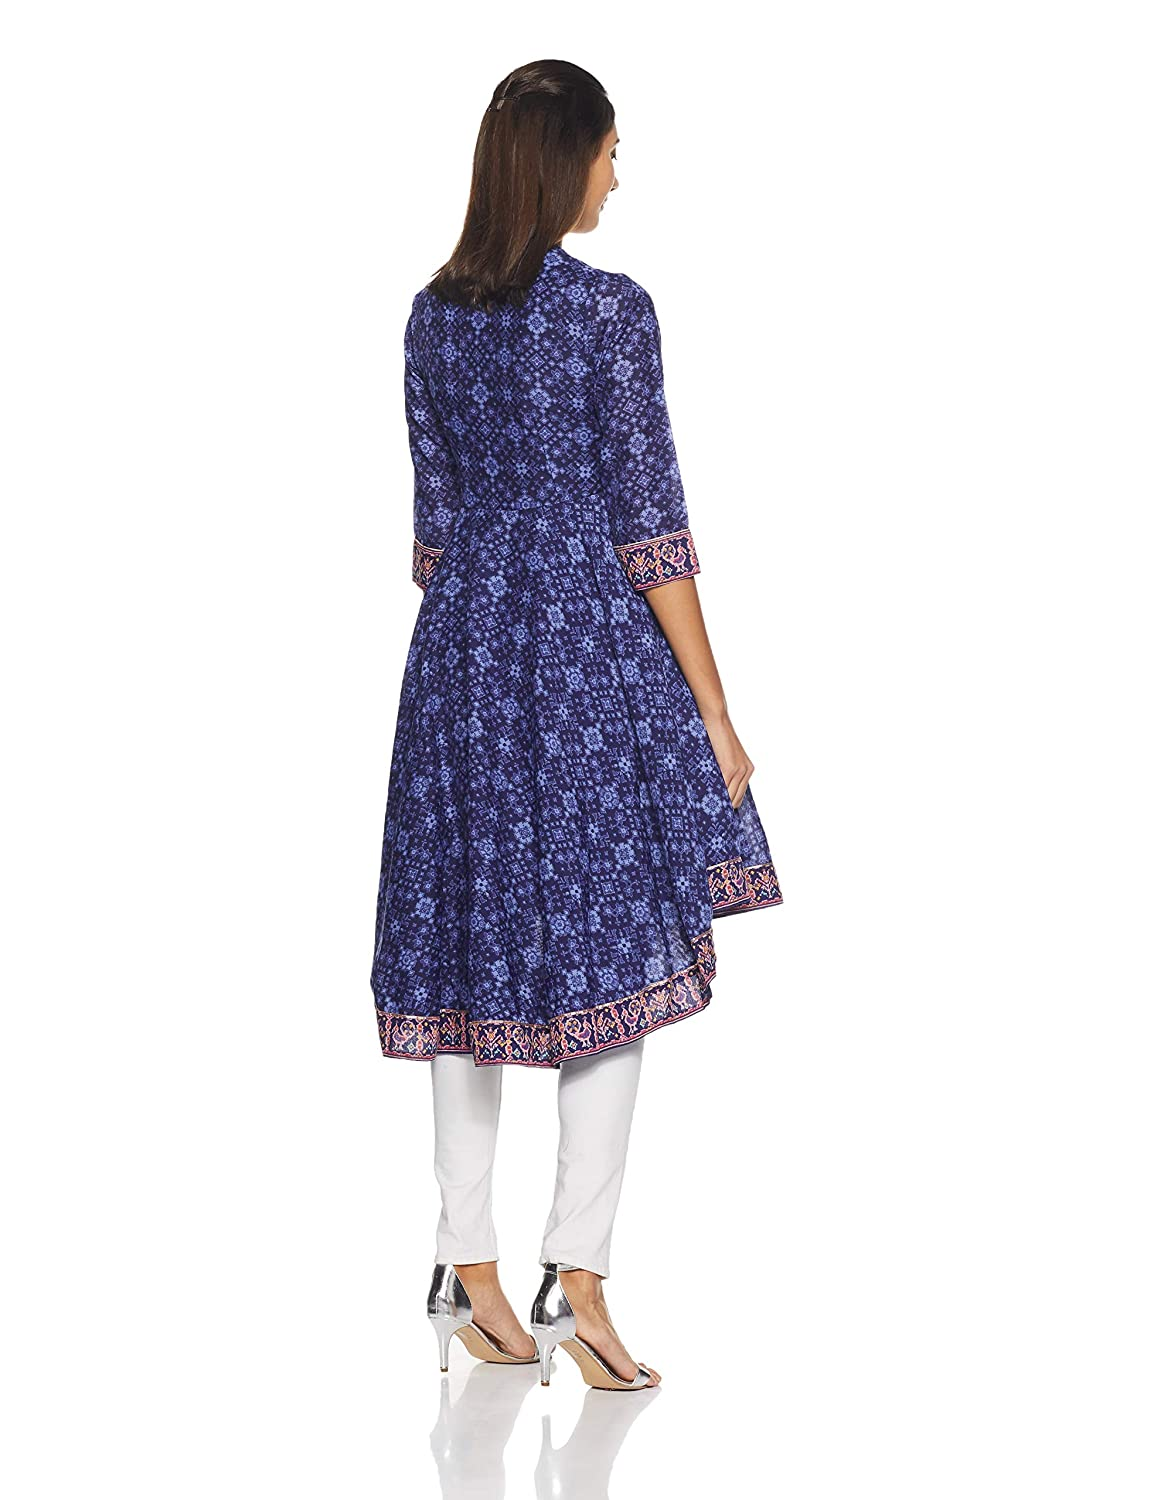 Best Anarkali Kurta Under For Women's